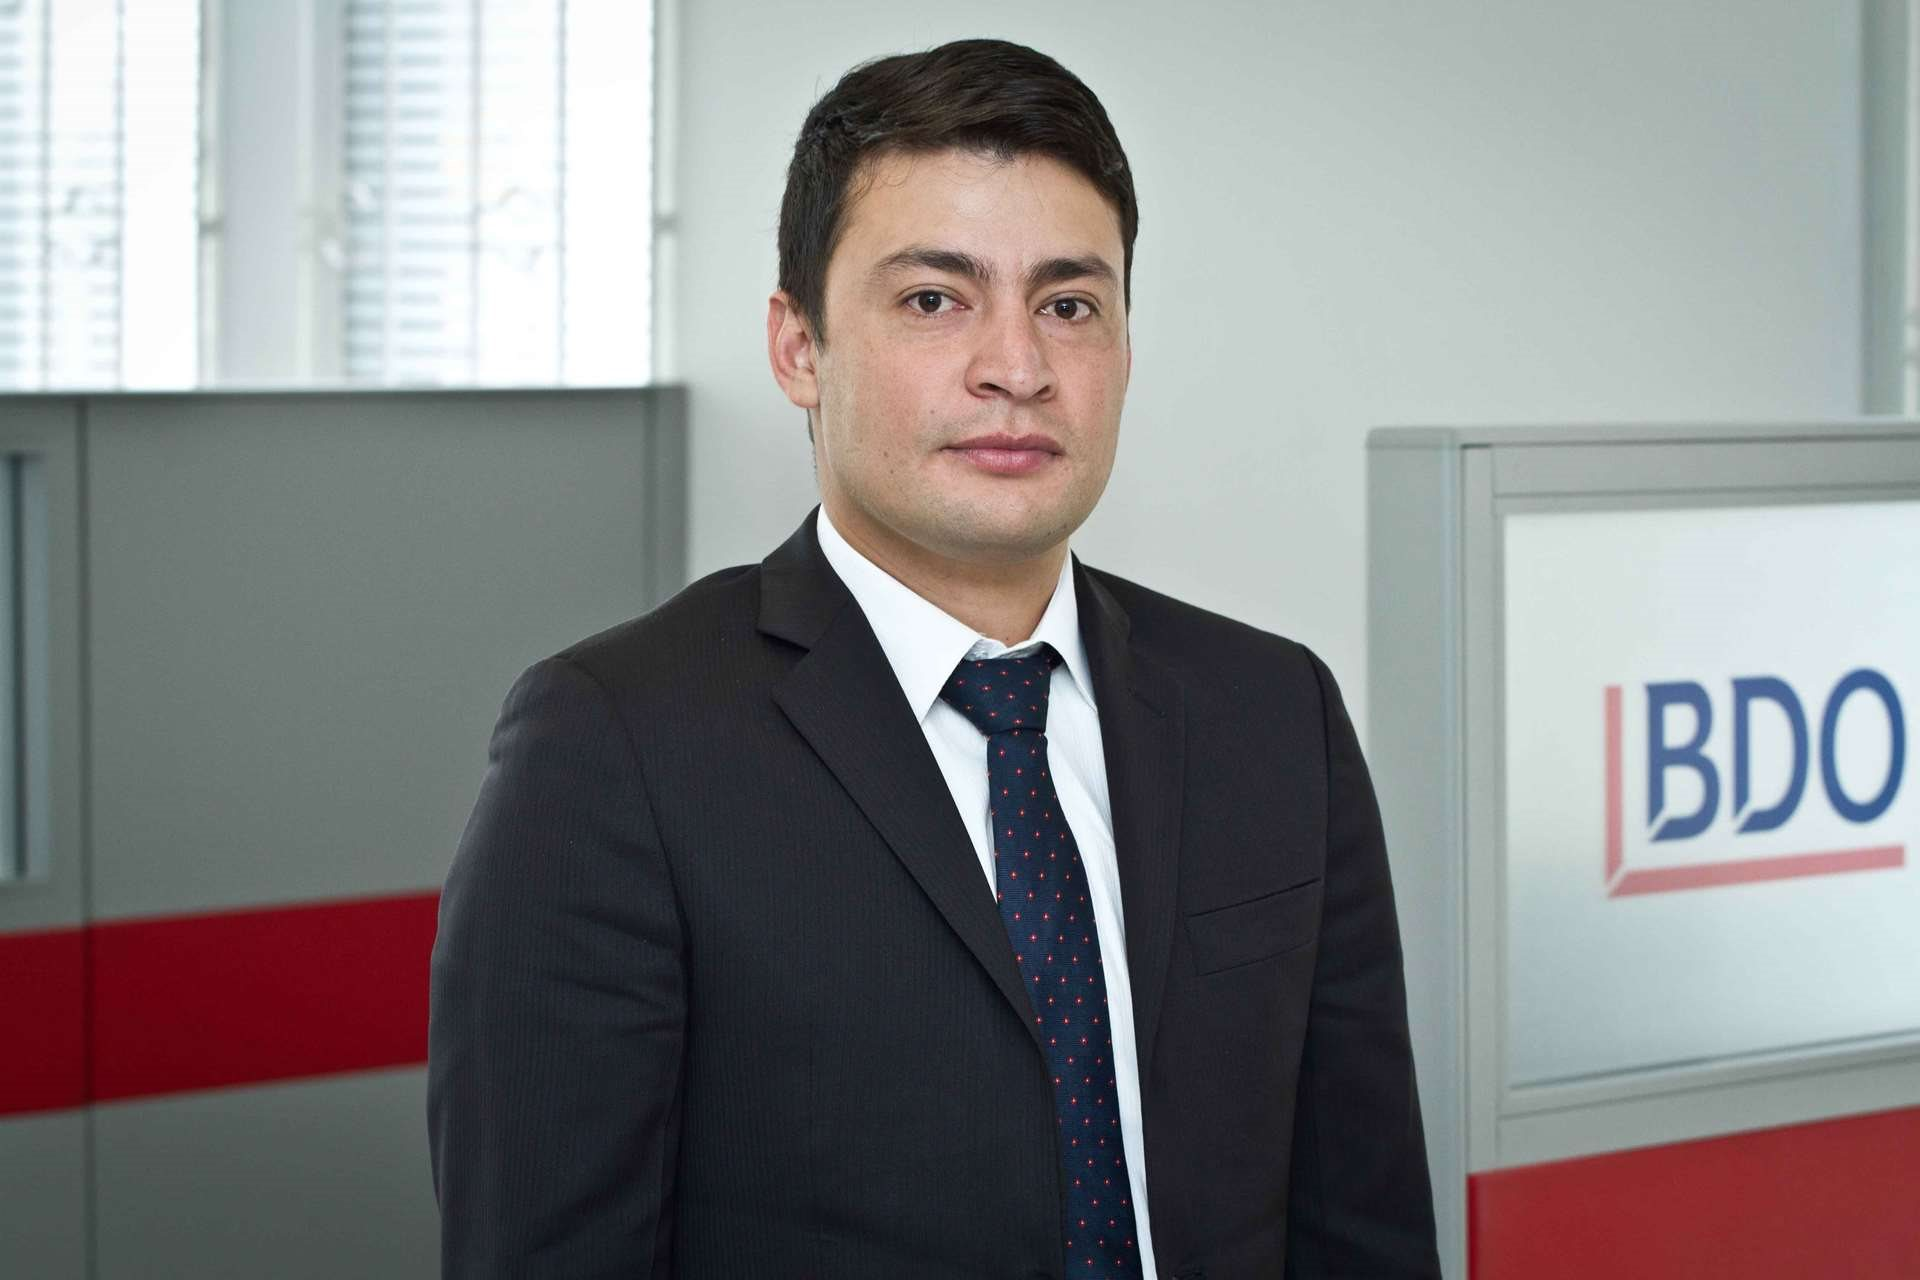 Luis Miguel Jiménez Cifuentes, Transfer pricing manager